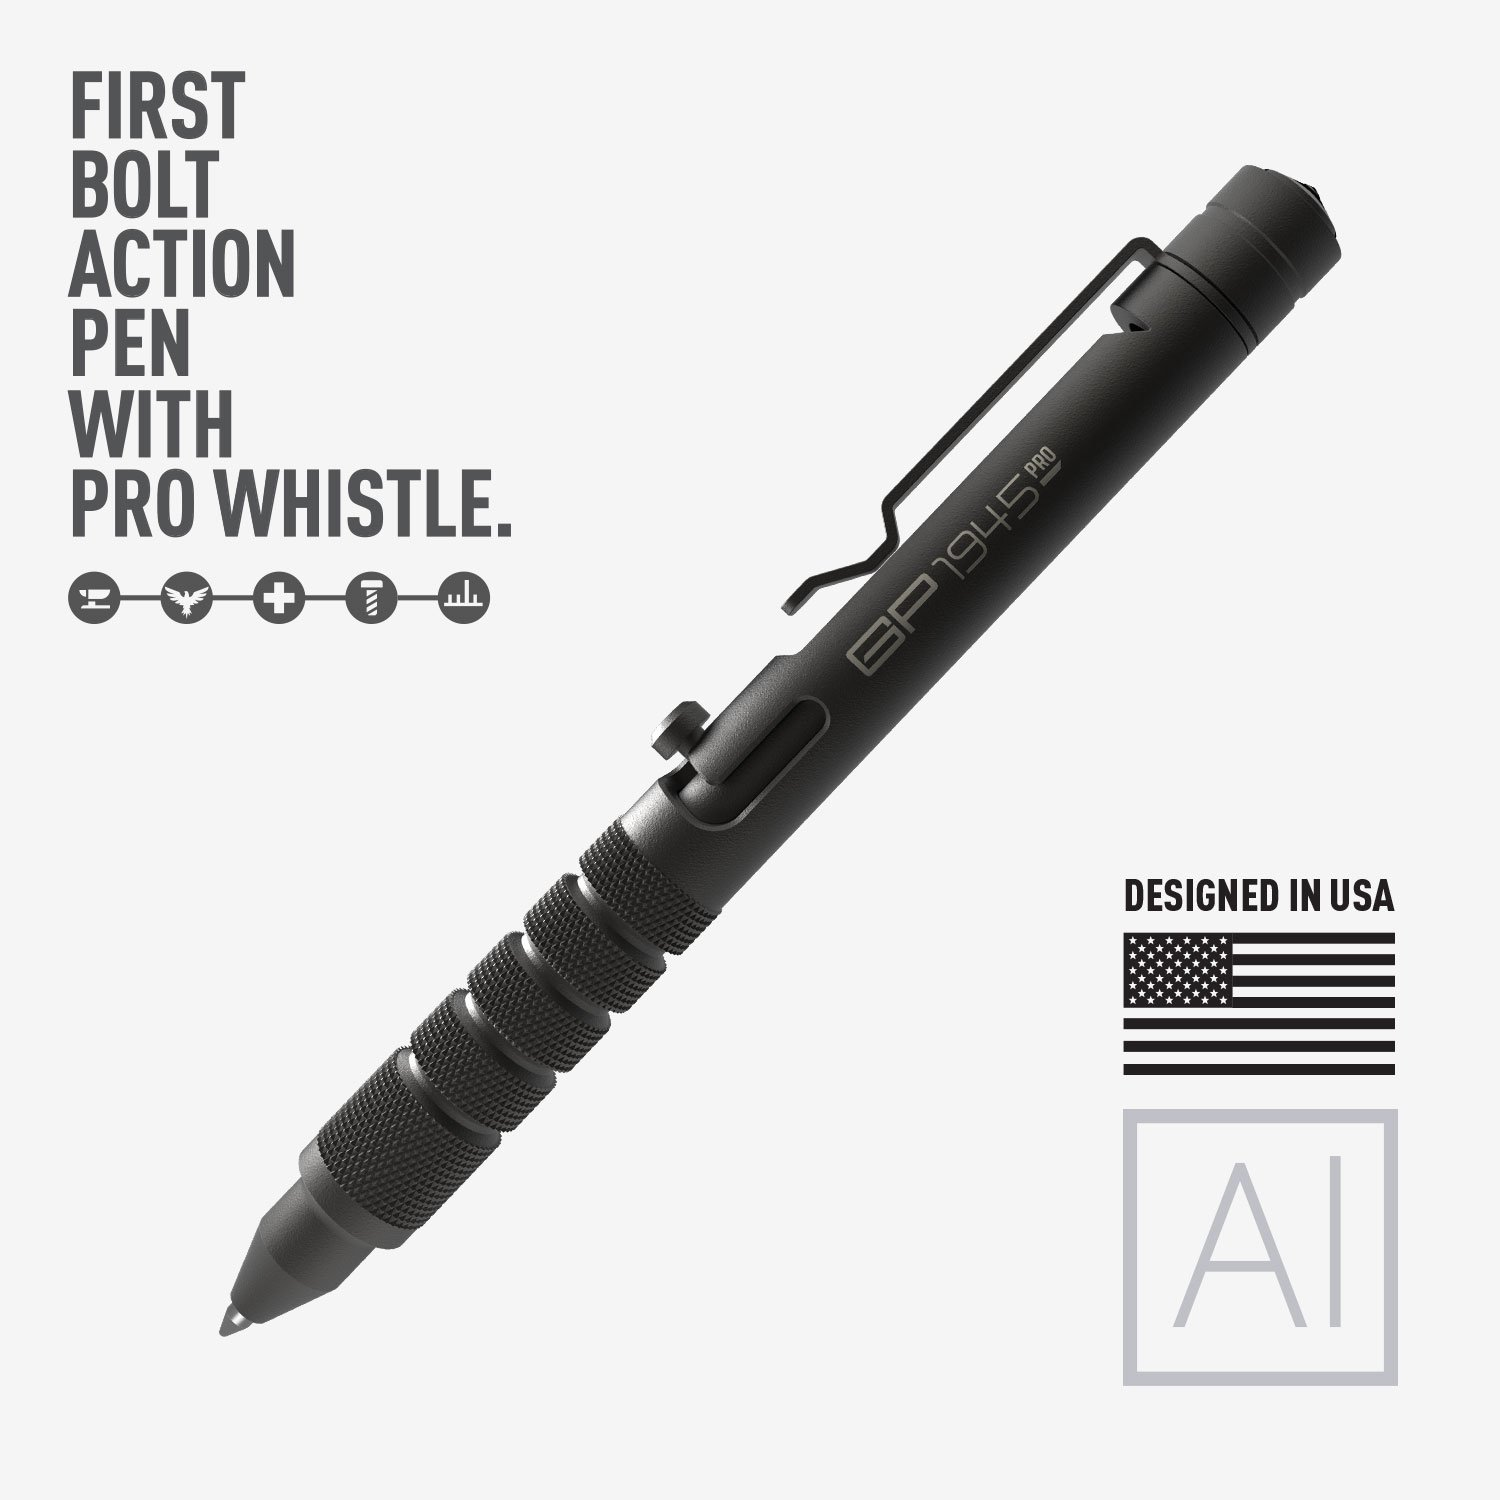 GP 1945 Bolt Action Pen PRO -Machined Titanium/Aluminum, Multi-Tone  Whistle, Breaker Integrated  USA